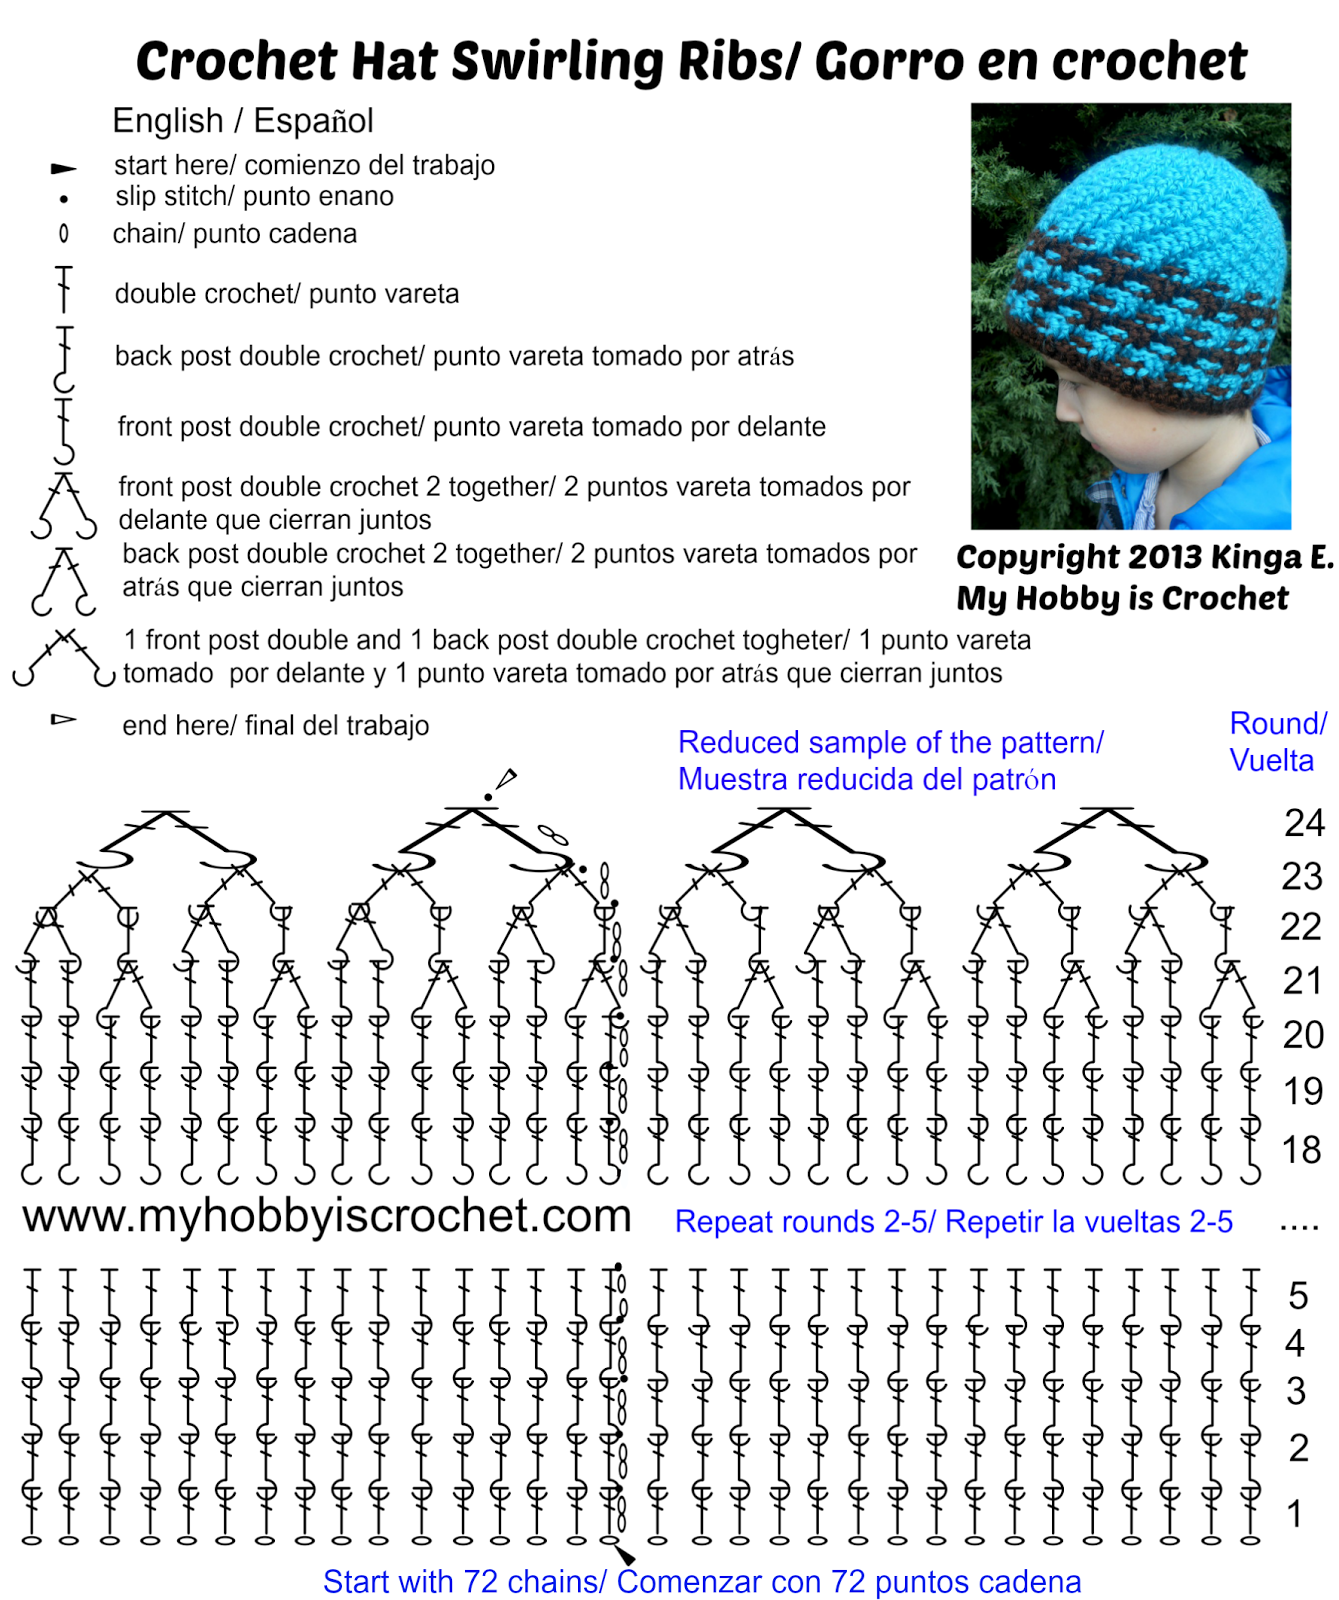 Crochet Hat Swirling Ribs Charted Pattern/Grafico gorro en crochet ...